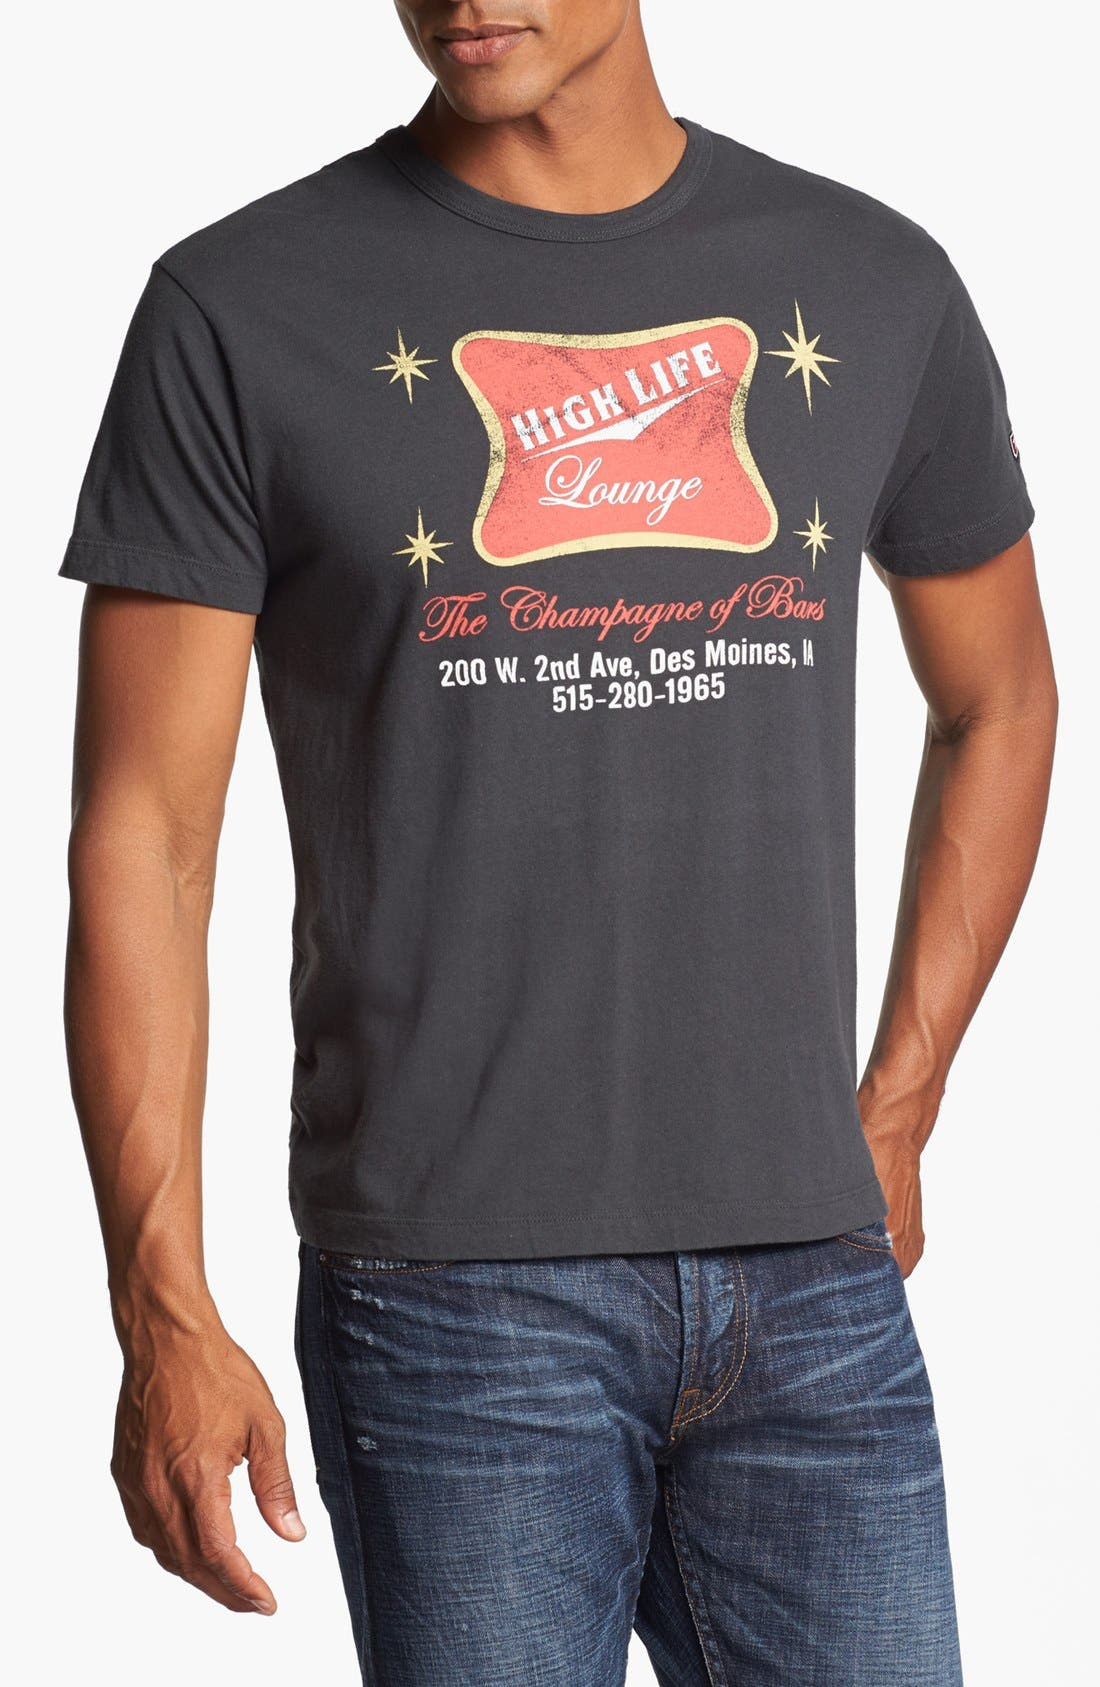 Alternate Image 1 Selected - Tailgate 'High Life Lounge' Trim Fit T-Shirt